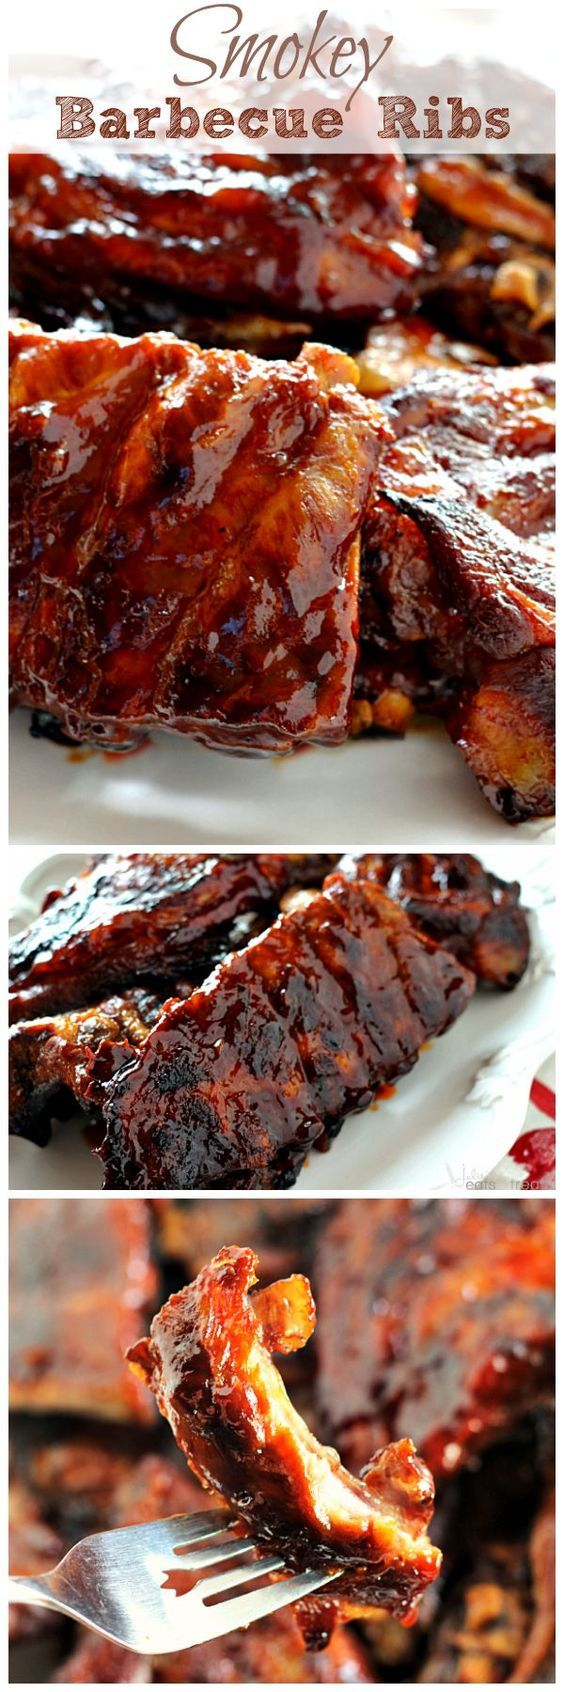 how to cook barbecue ribs sauce